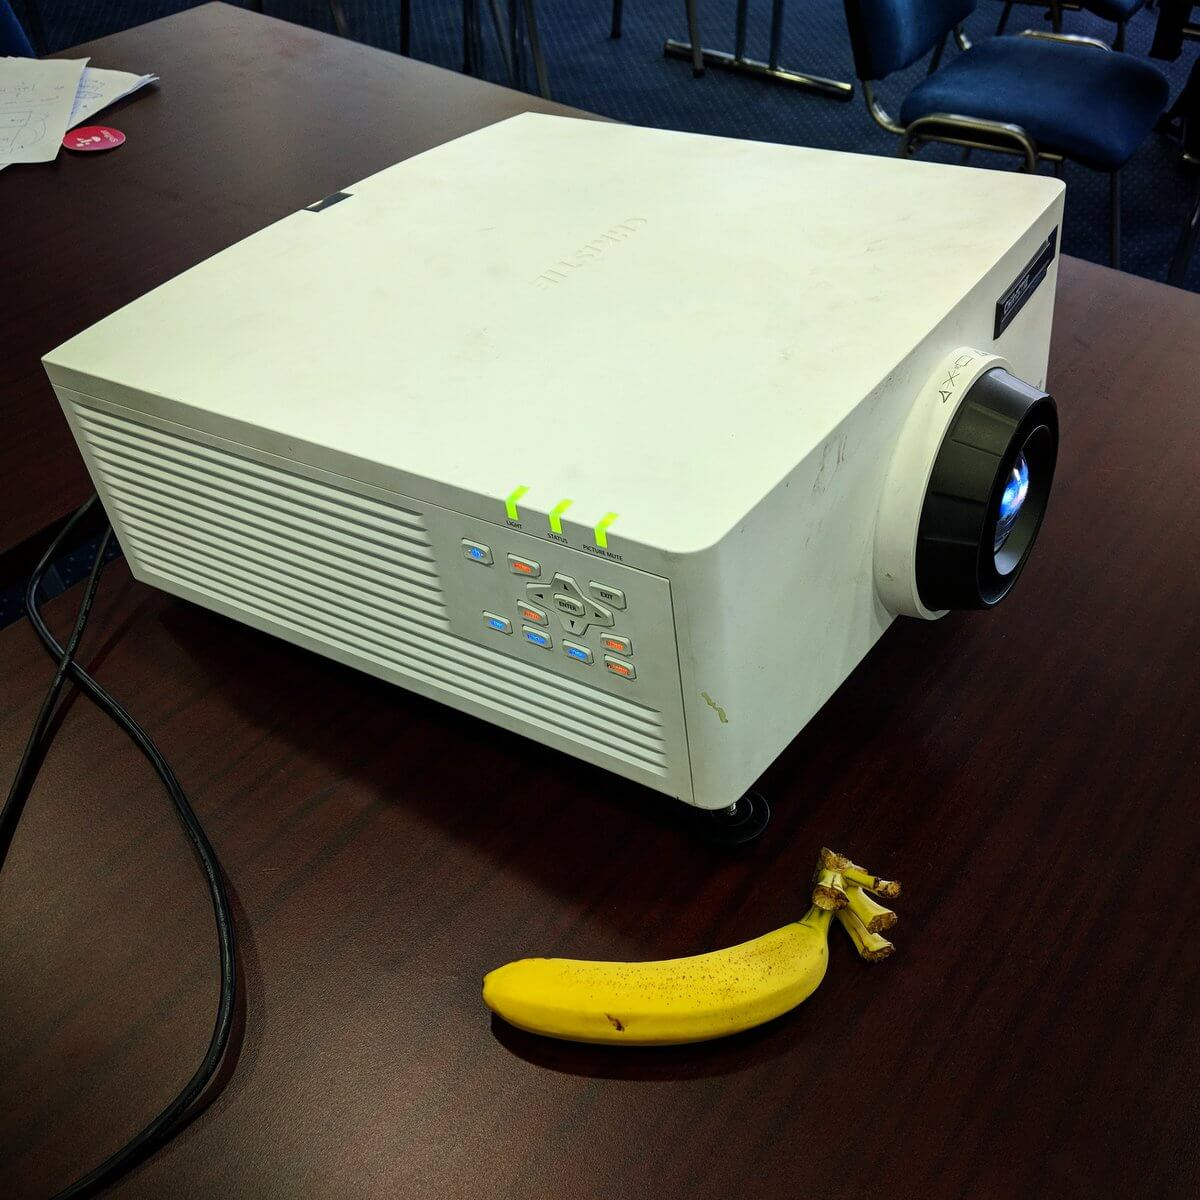 A large computer projector with a worn cover.  It is about a foot-and-a-half square and two-thirds as tall. It has a bank of status lights on one side. Beside it is a banana, dwarfed by the projector.